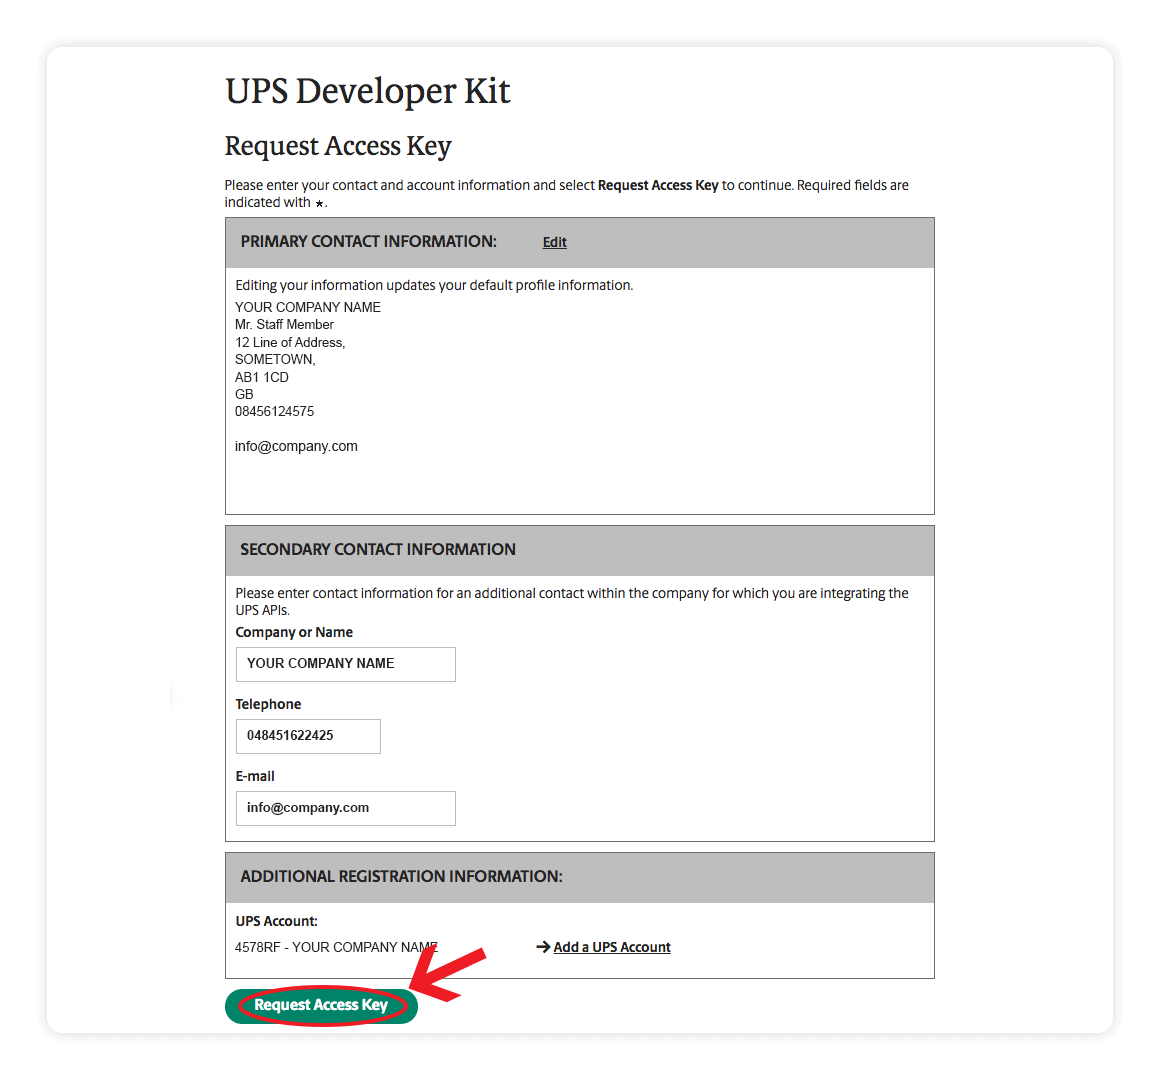 UPS Developer Kit - request access key - Multiorders integration guide